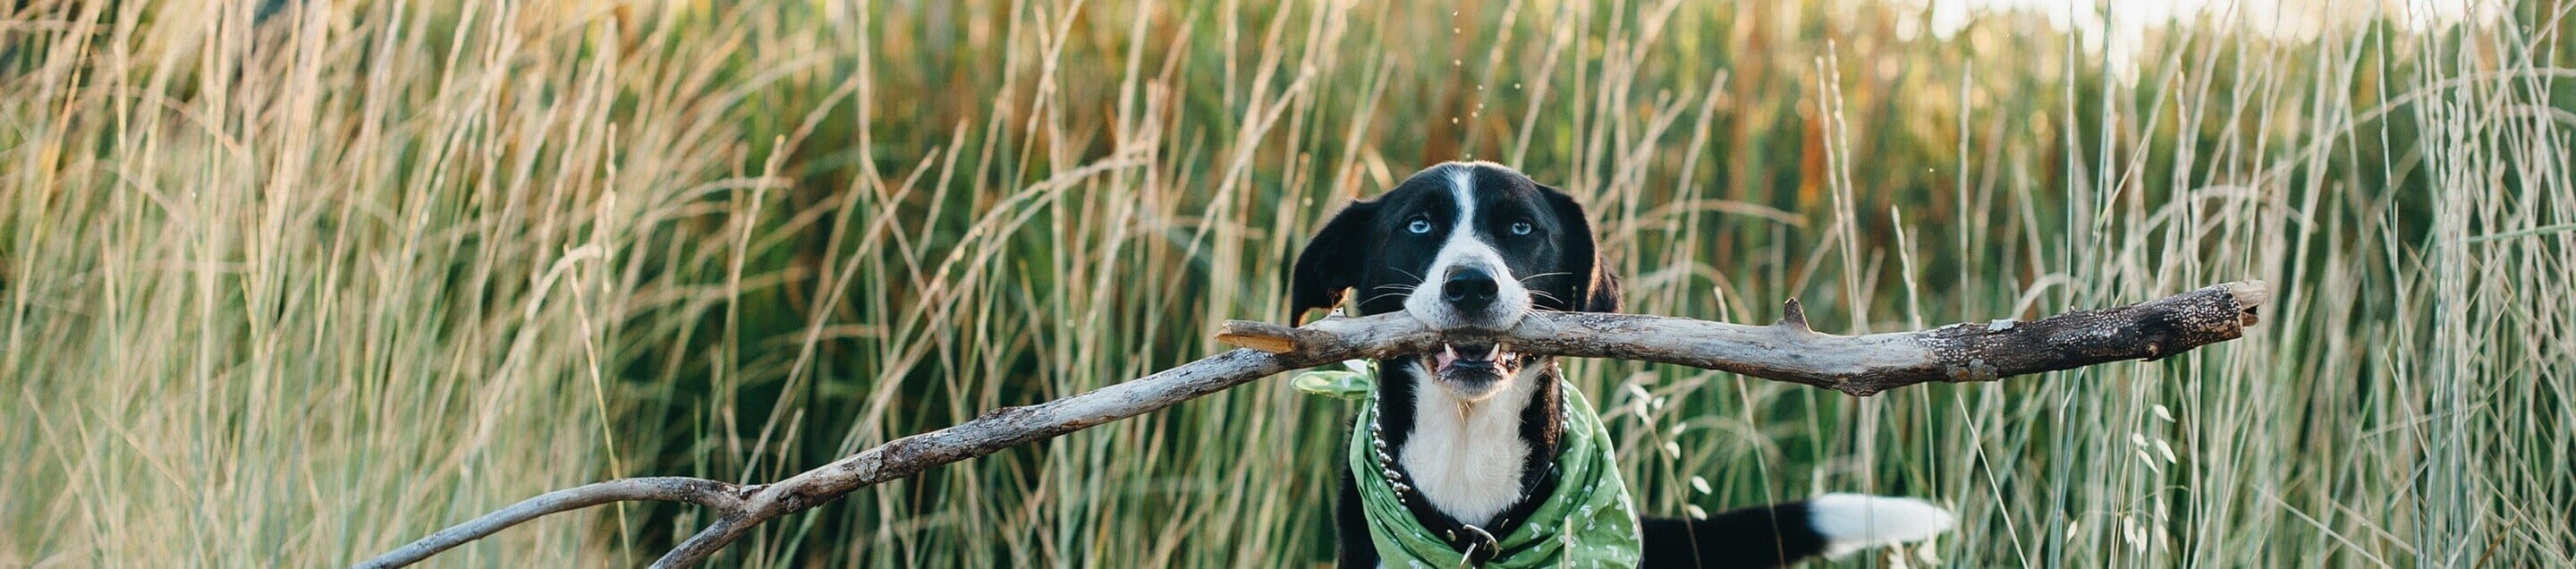 Black and white dog wearing a green bandana holding up a giant stick in his mouth class=